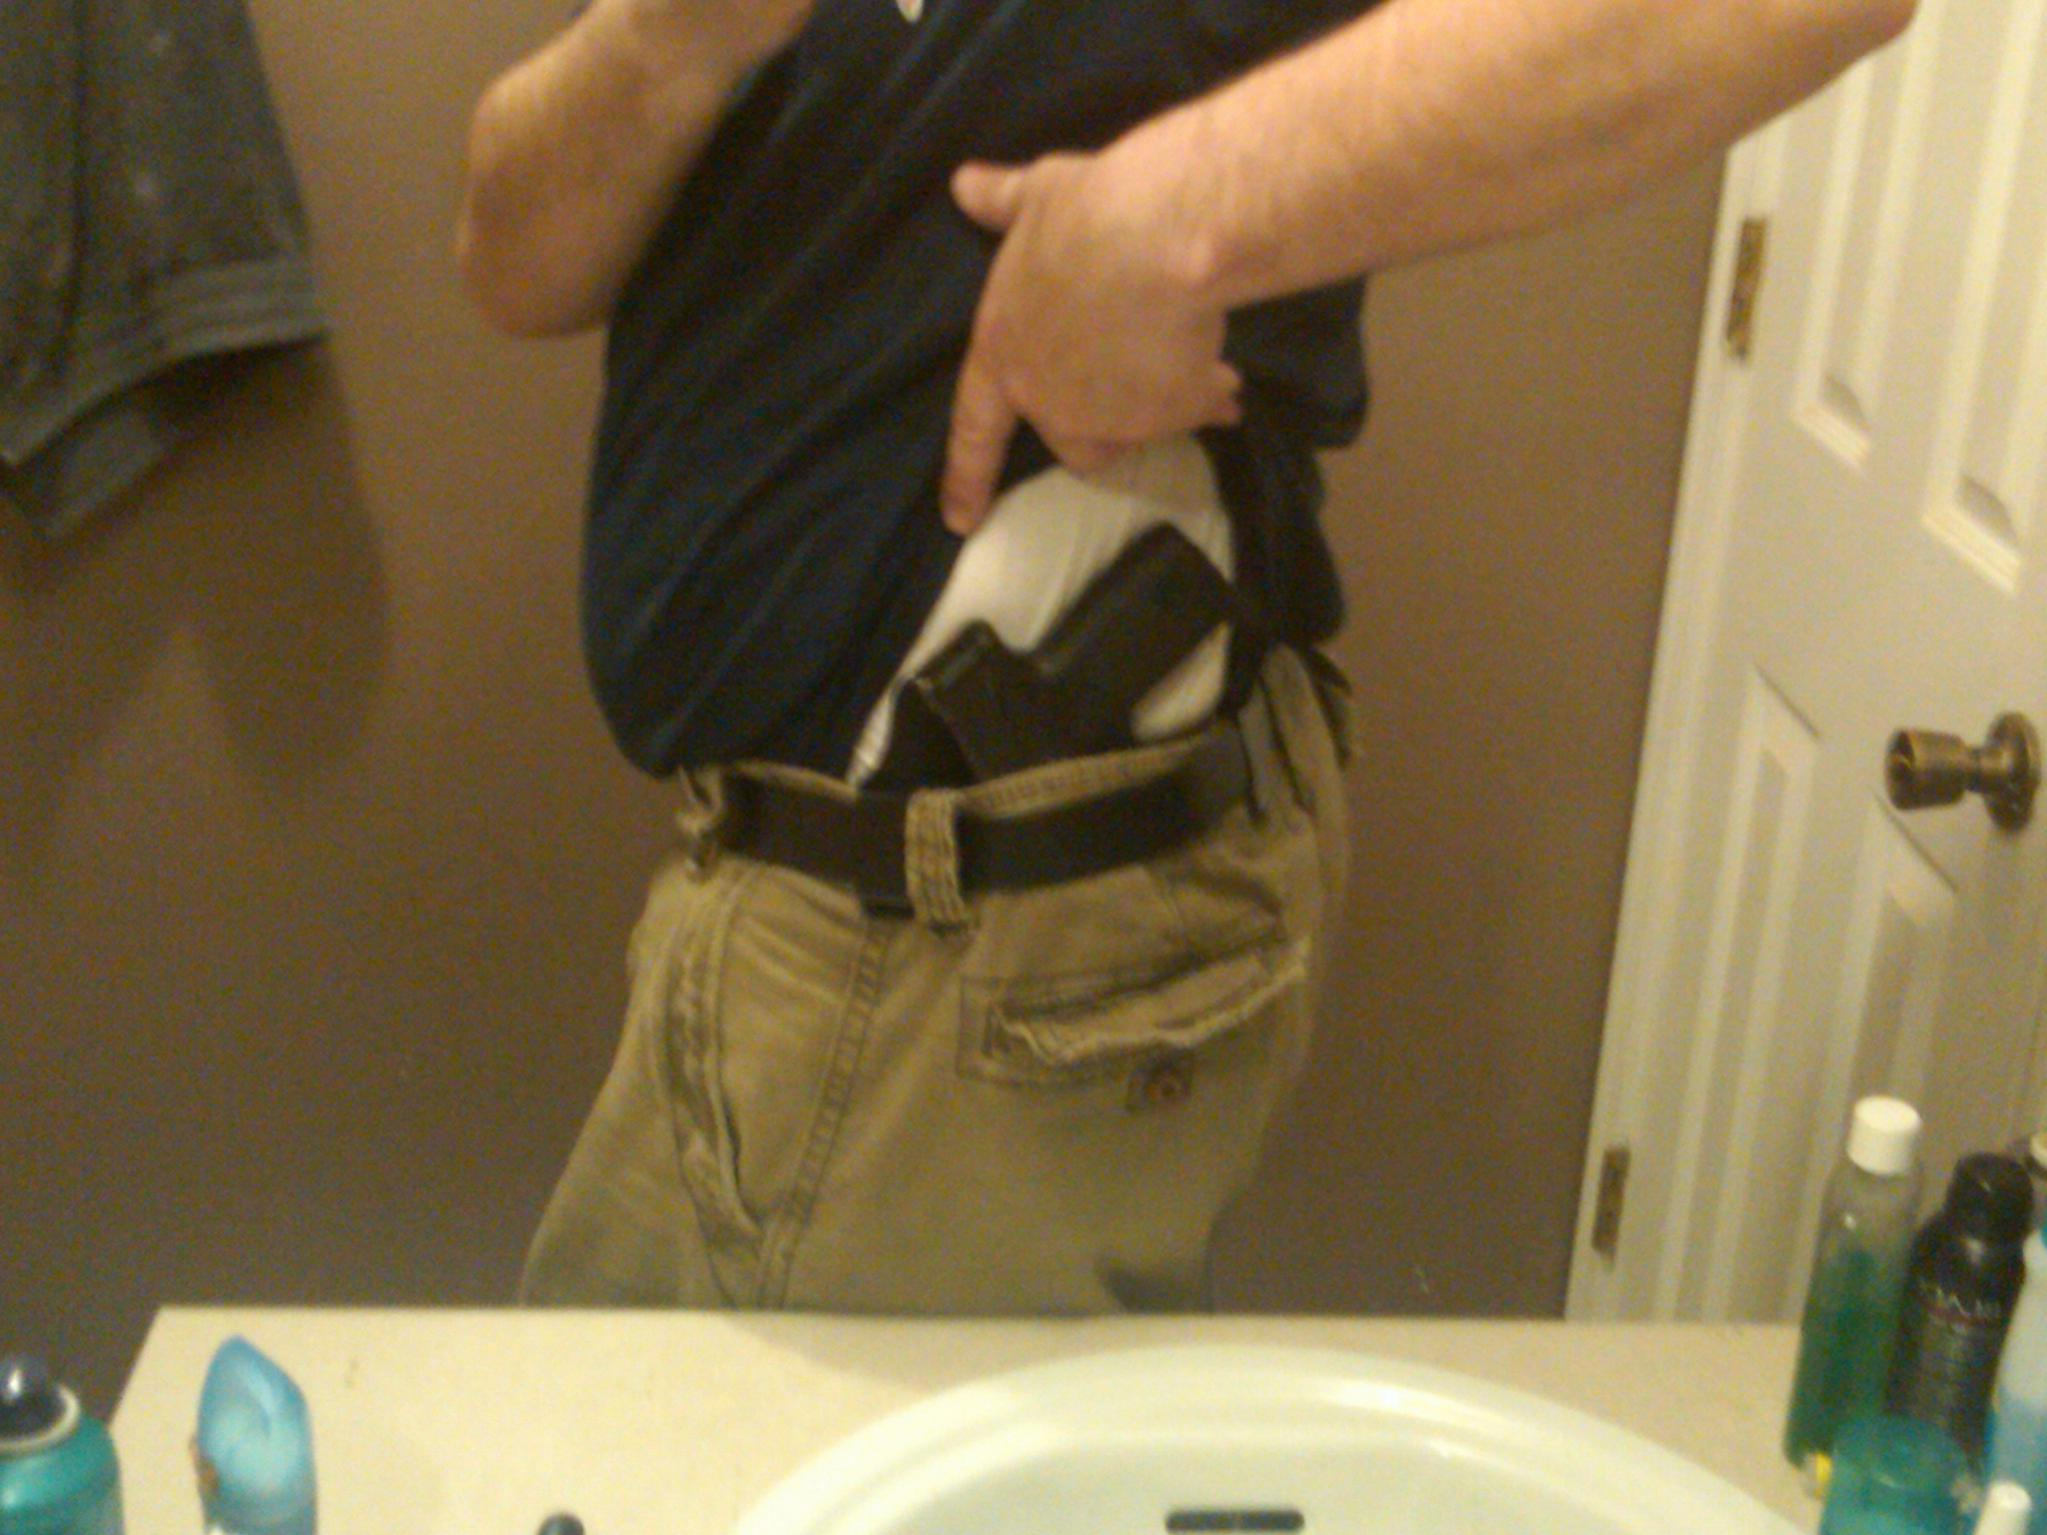 Tucked Holsters in Summer-img00060-20110317-1929.jpg